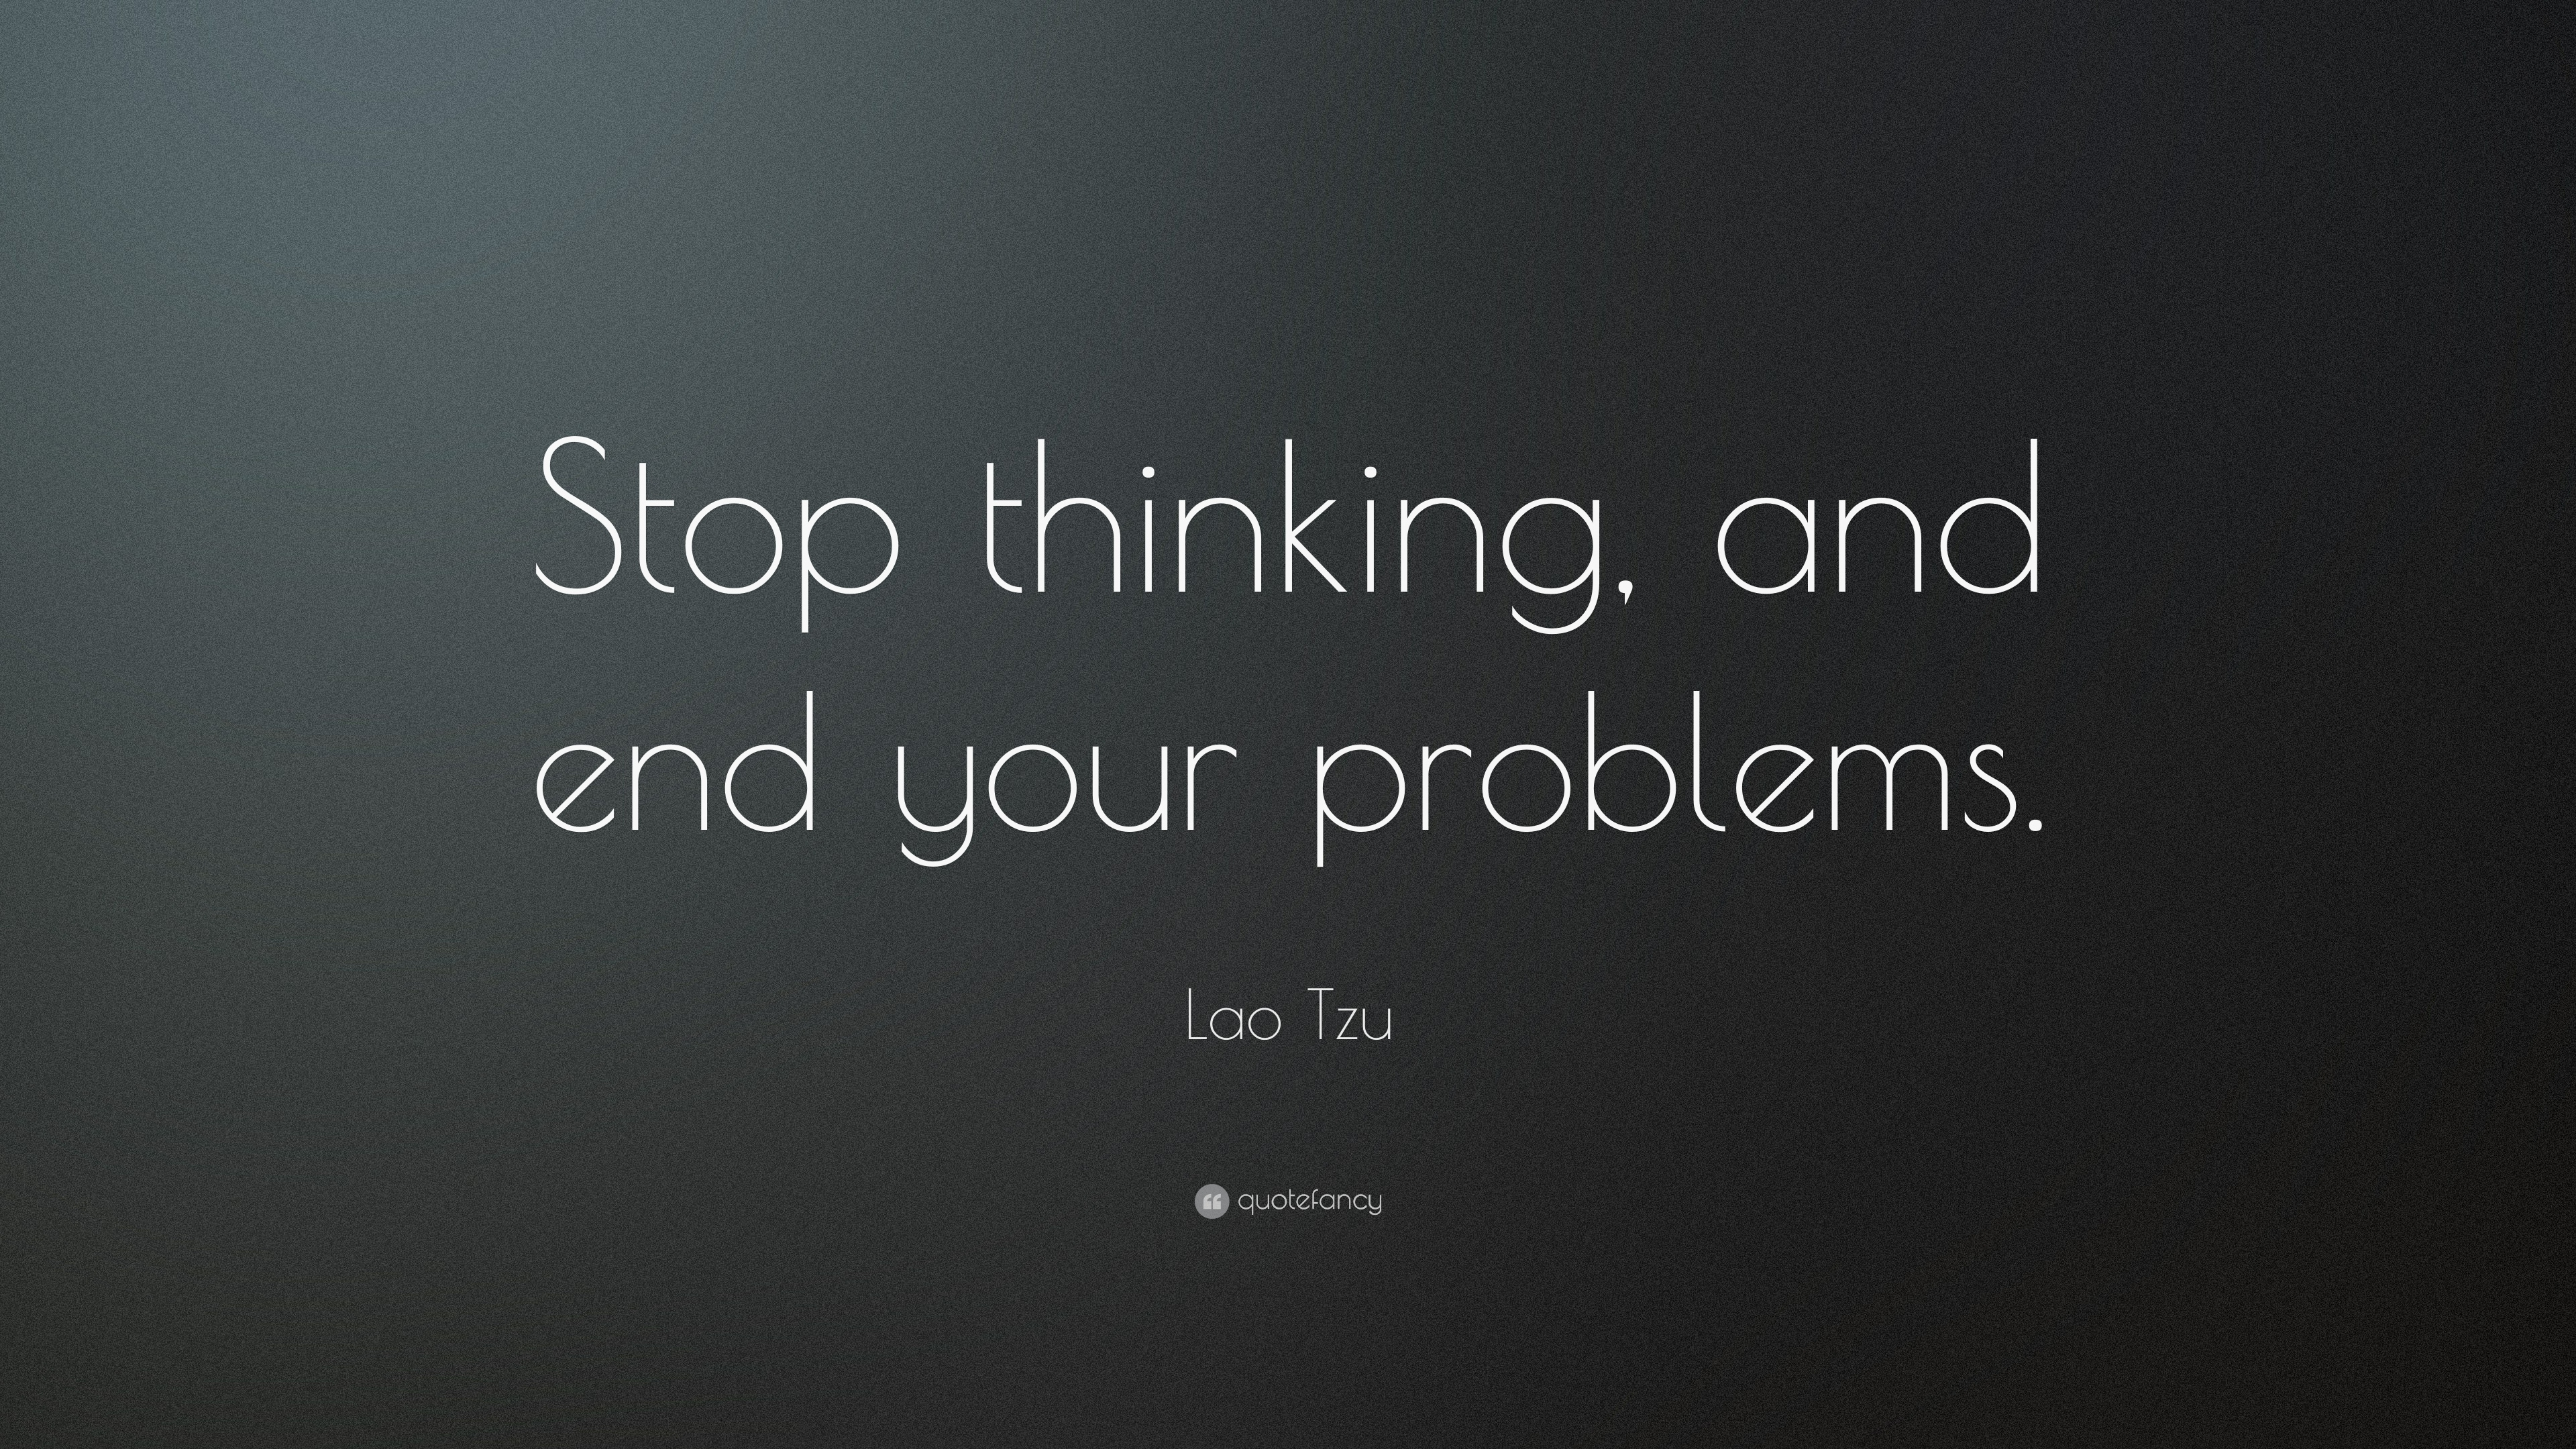 Lao tzu quotes 94 wallpapers quotefancy - Stop wishing start doing hd wallpaper ...